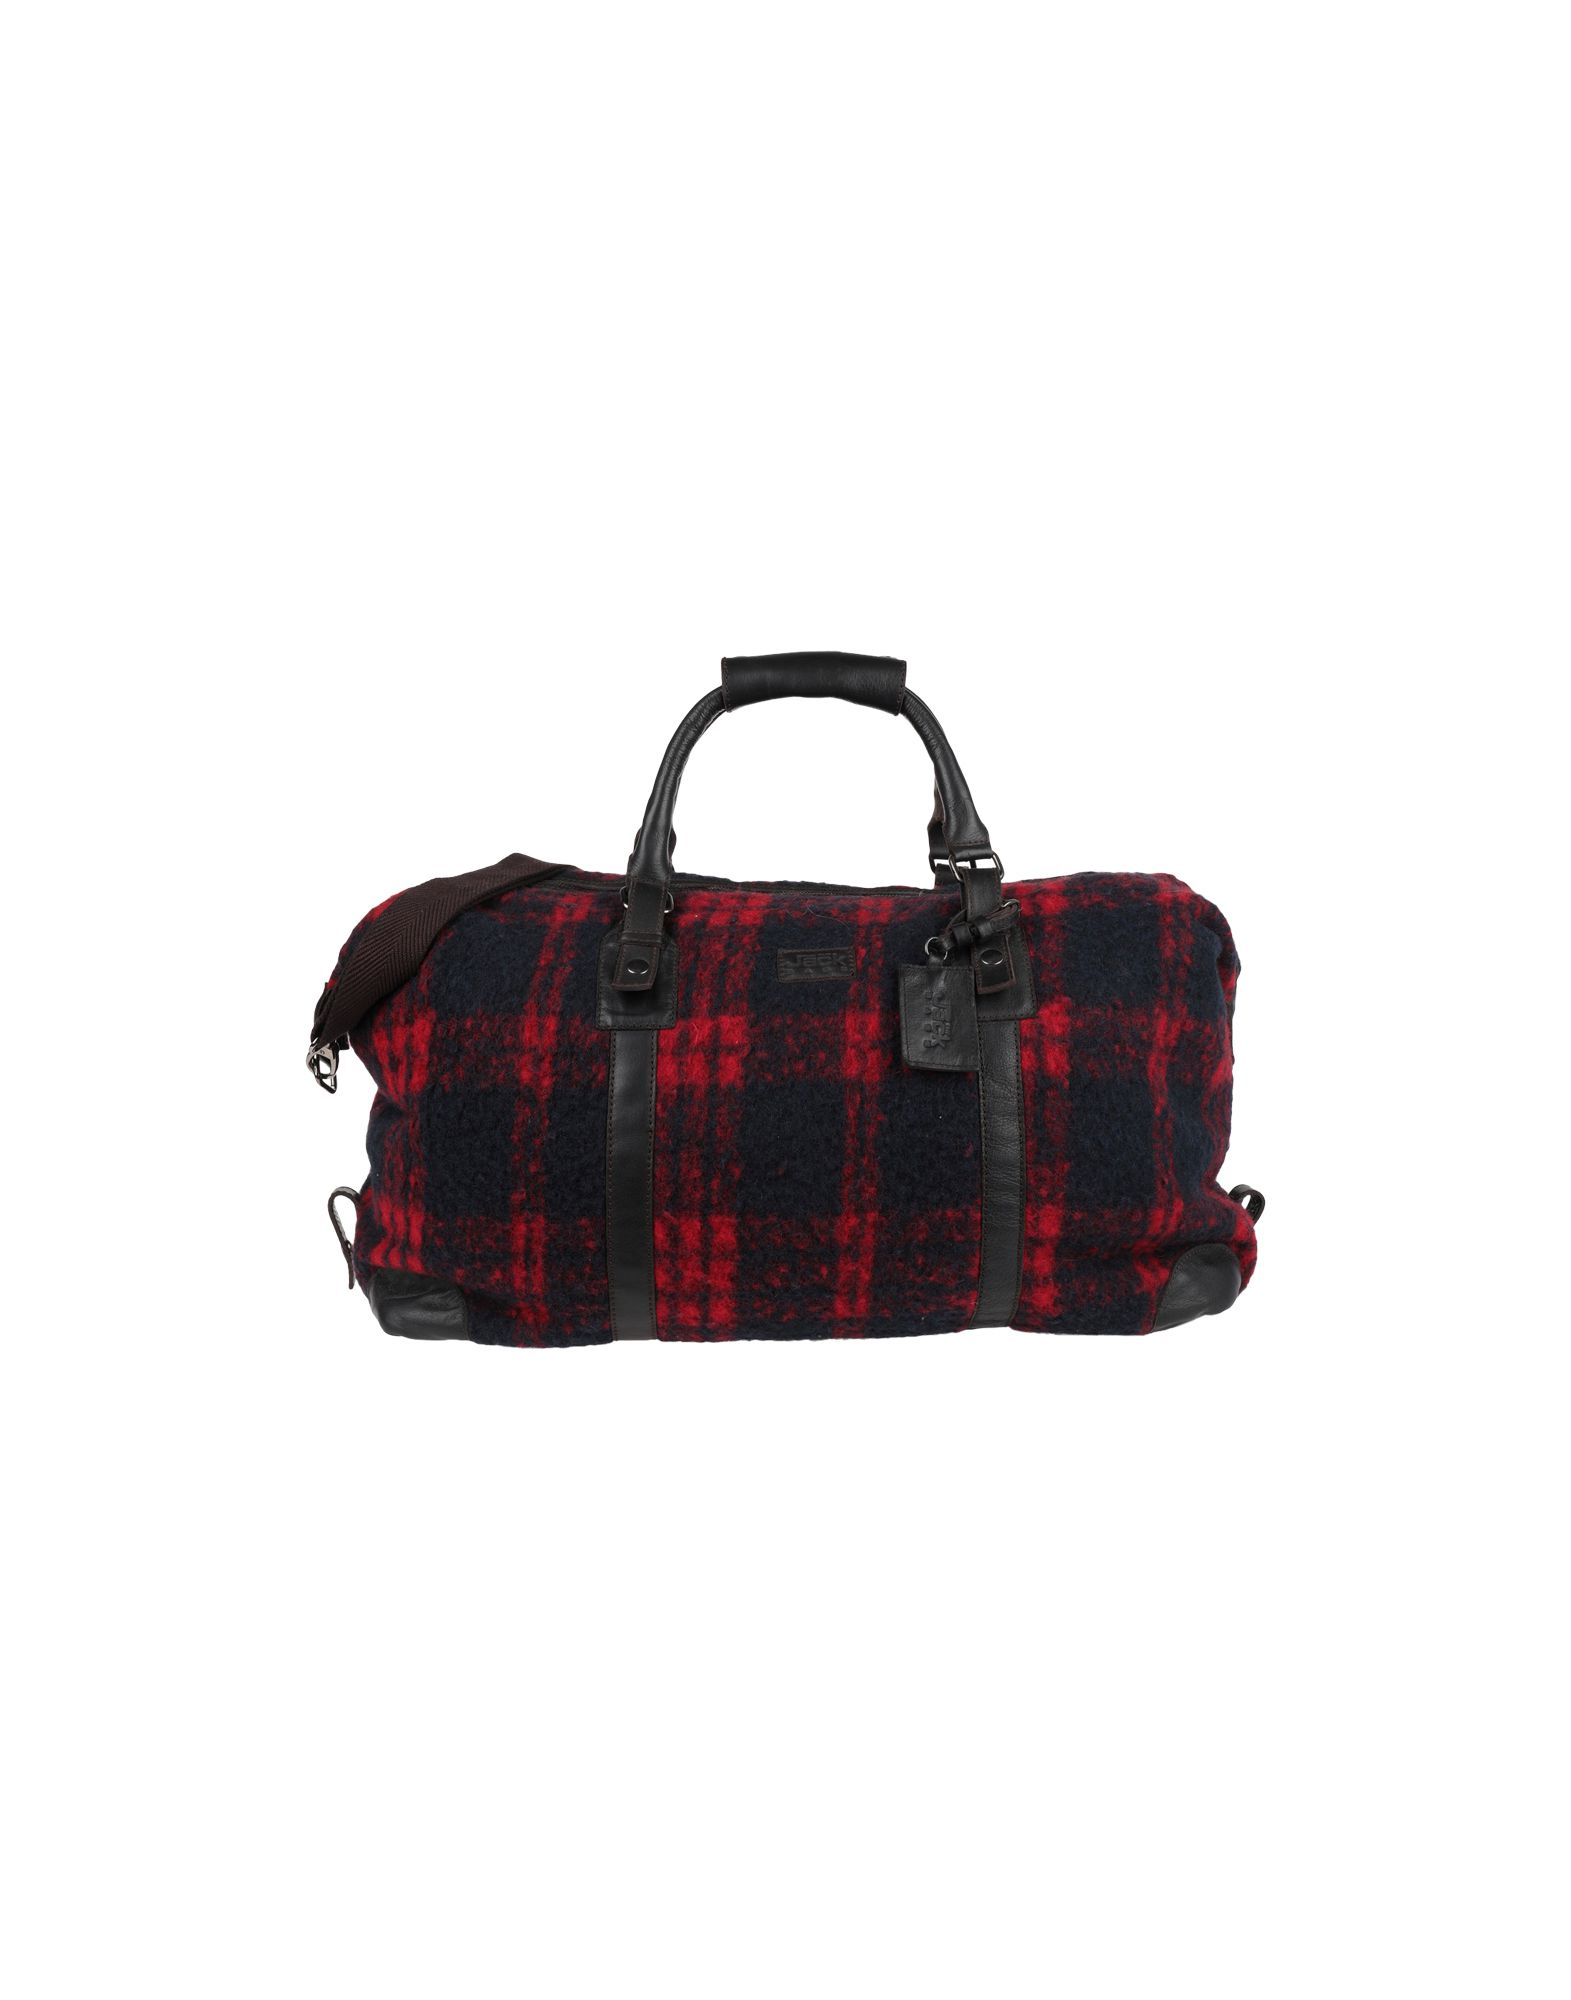 THE JACK LEATHERS Travel & duffel bags